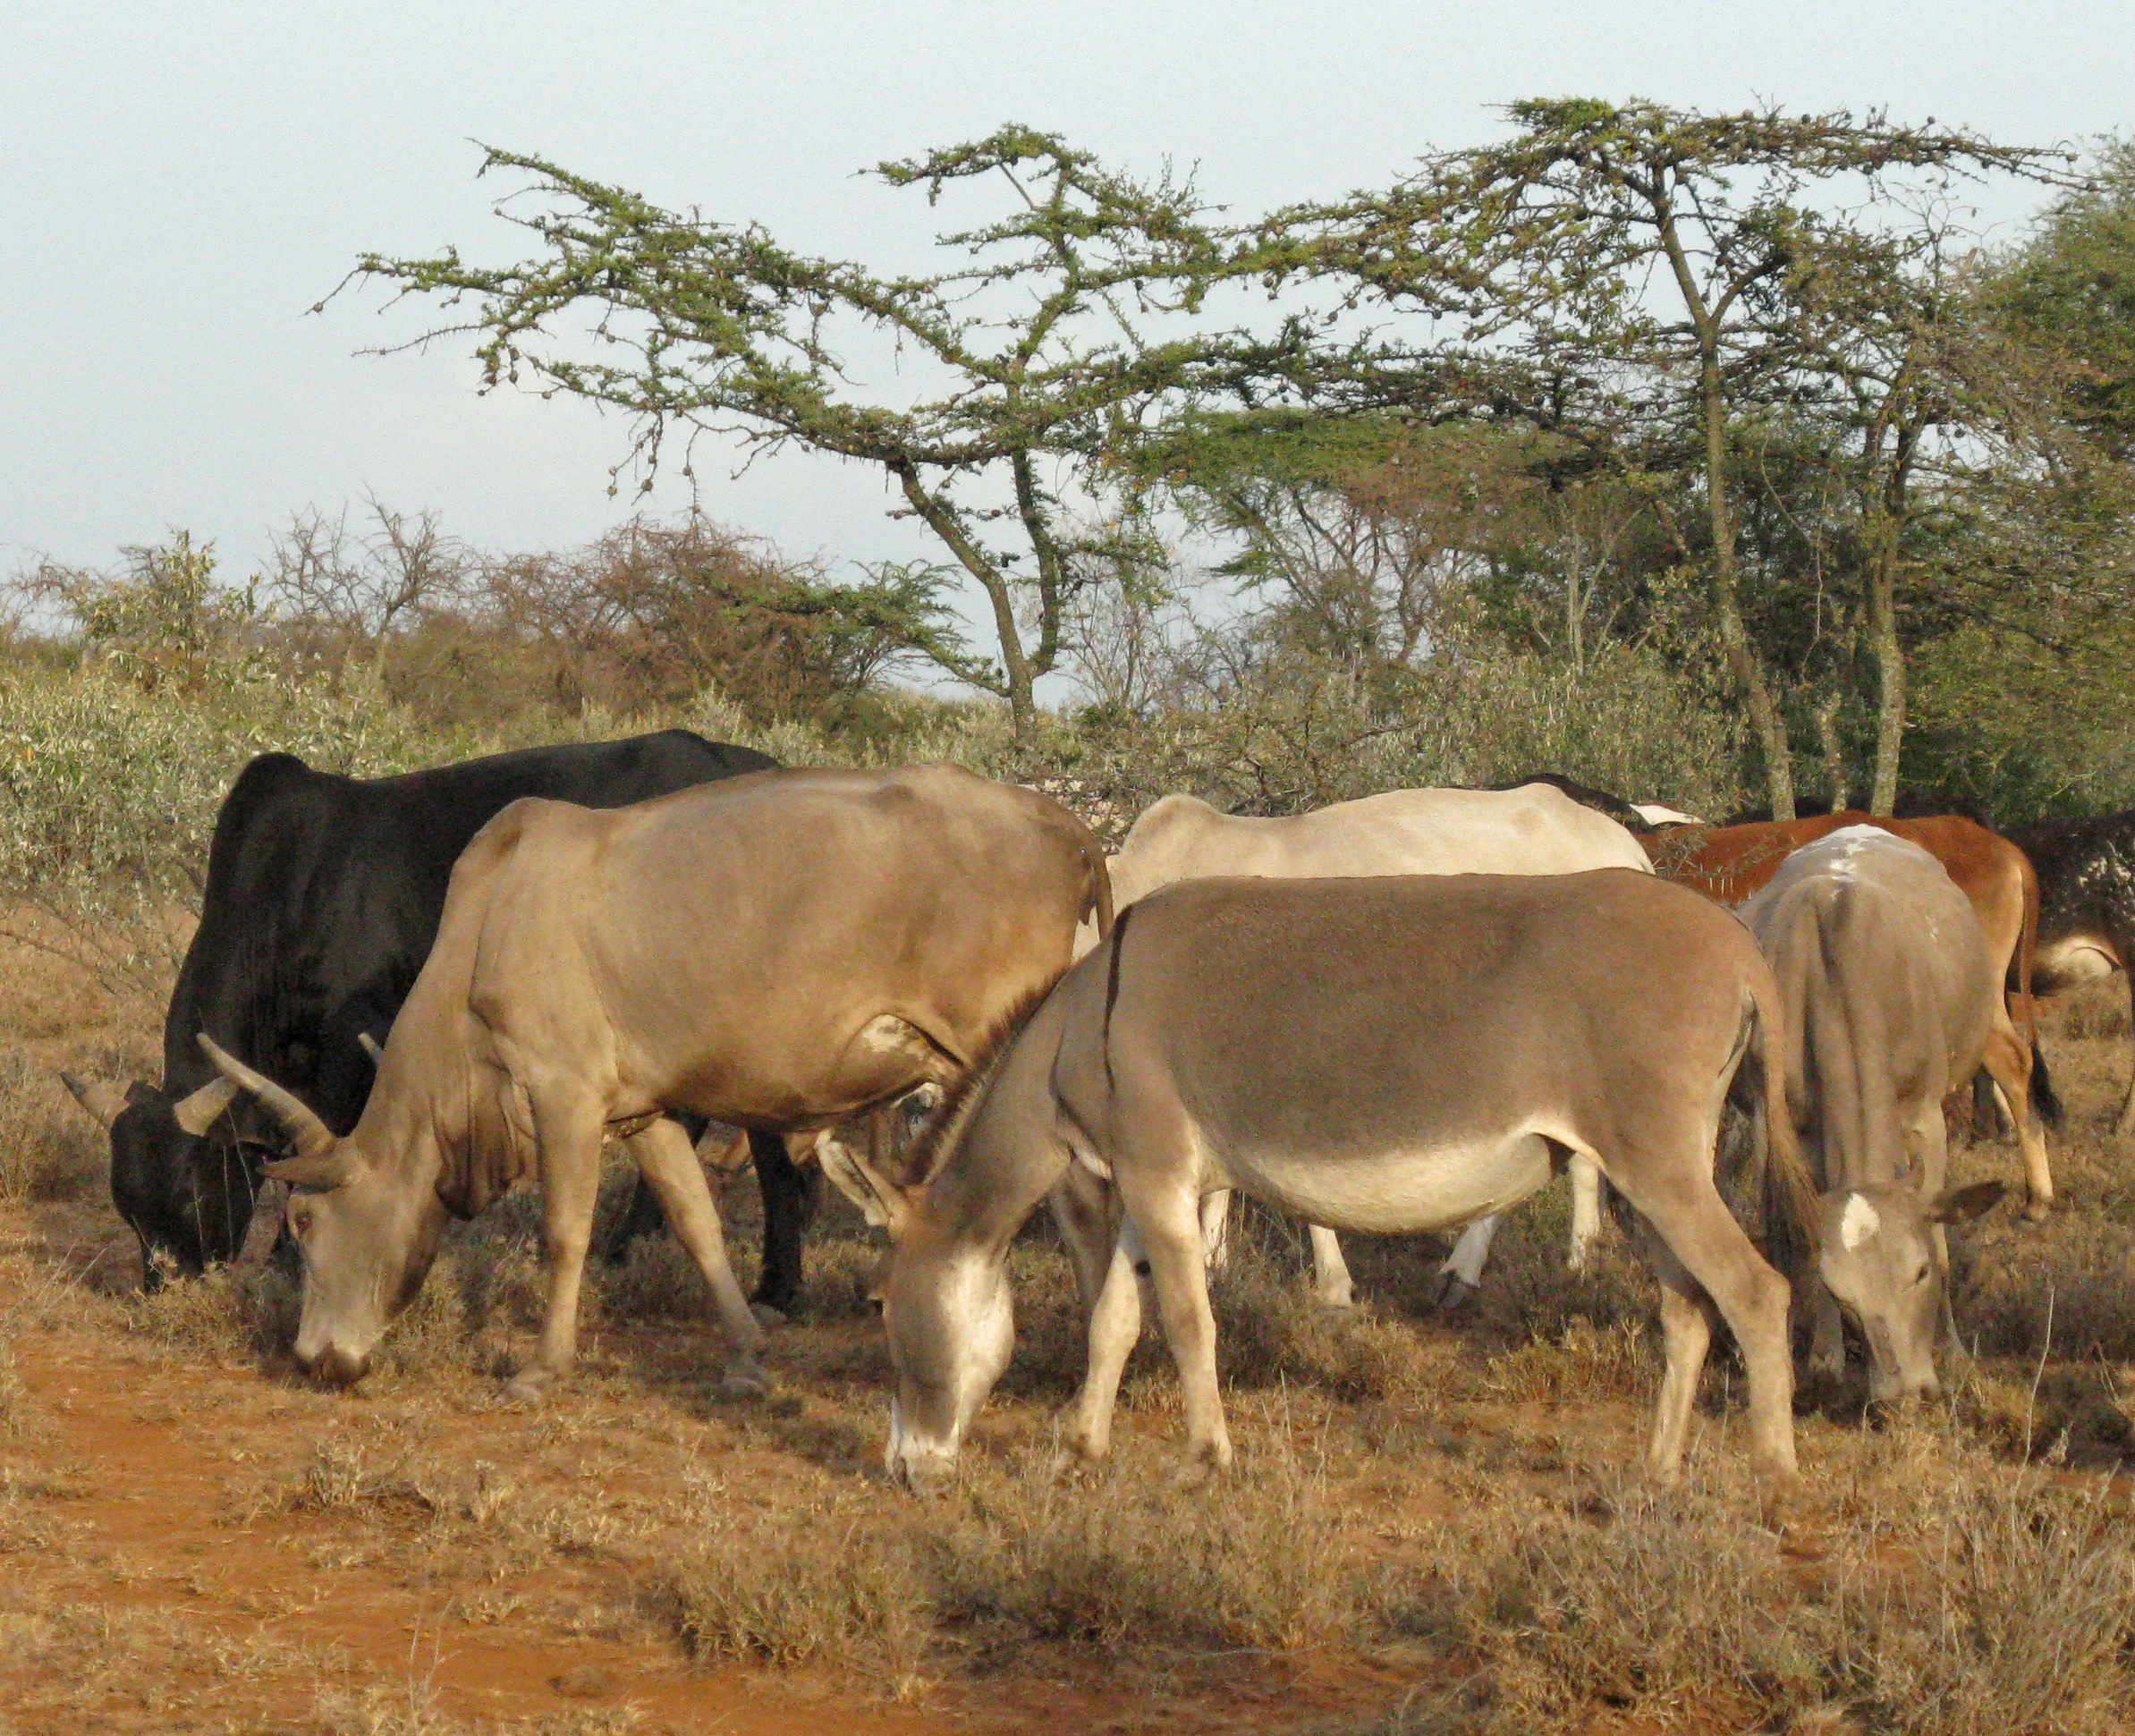 Cattle and donkeys at a camp in Kenya. A new University of Utah-led study found that early herders and livestock traveling from eastern Africa to southern Africa some 2,000 years ago could have passed through the Lake Victoria Basin in southwest Kenya because the area was grassy, not a bushy, tsetse fly-infested environment as previously believed.